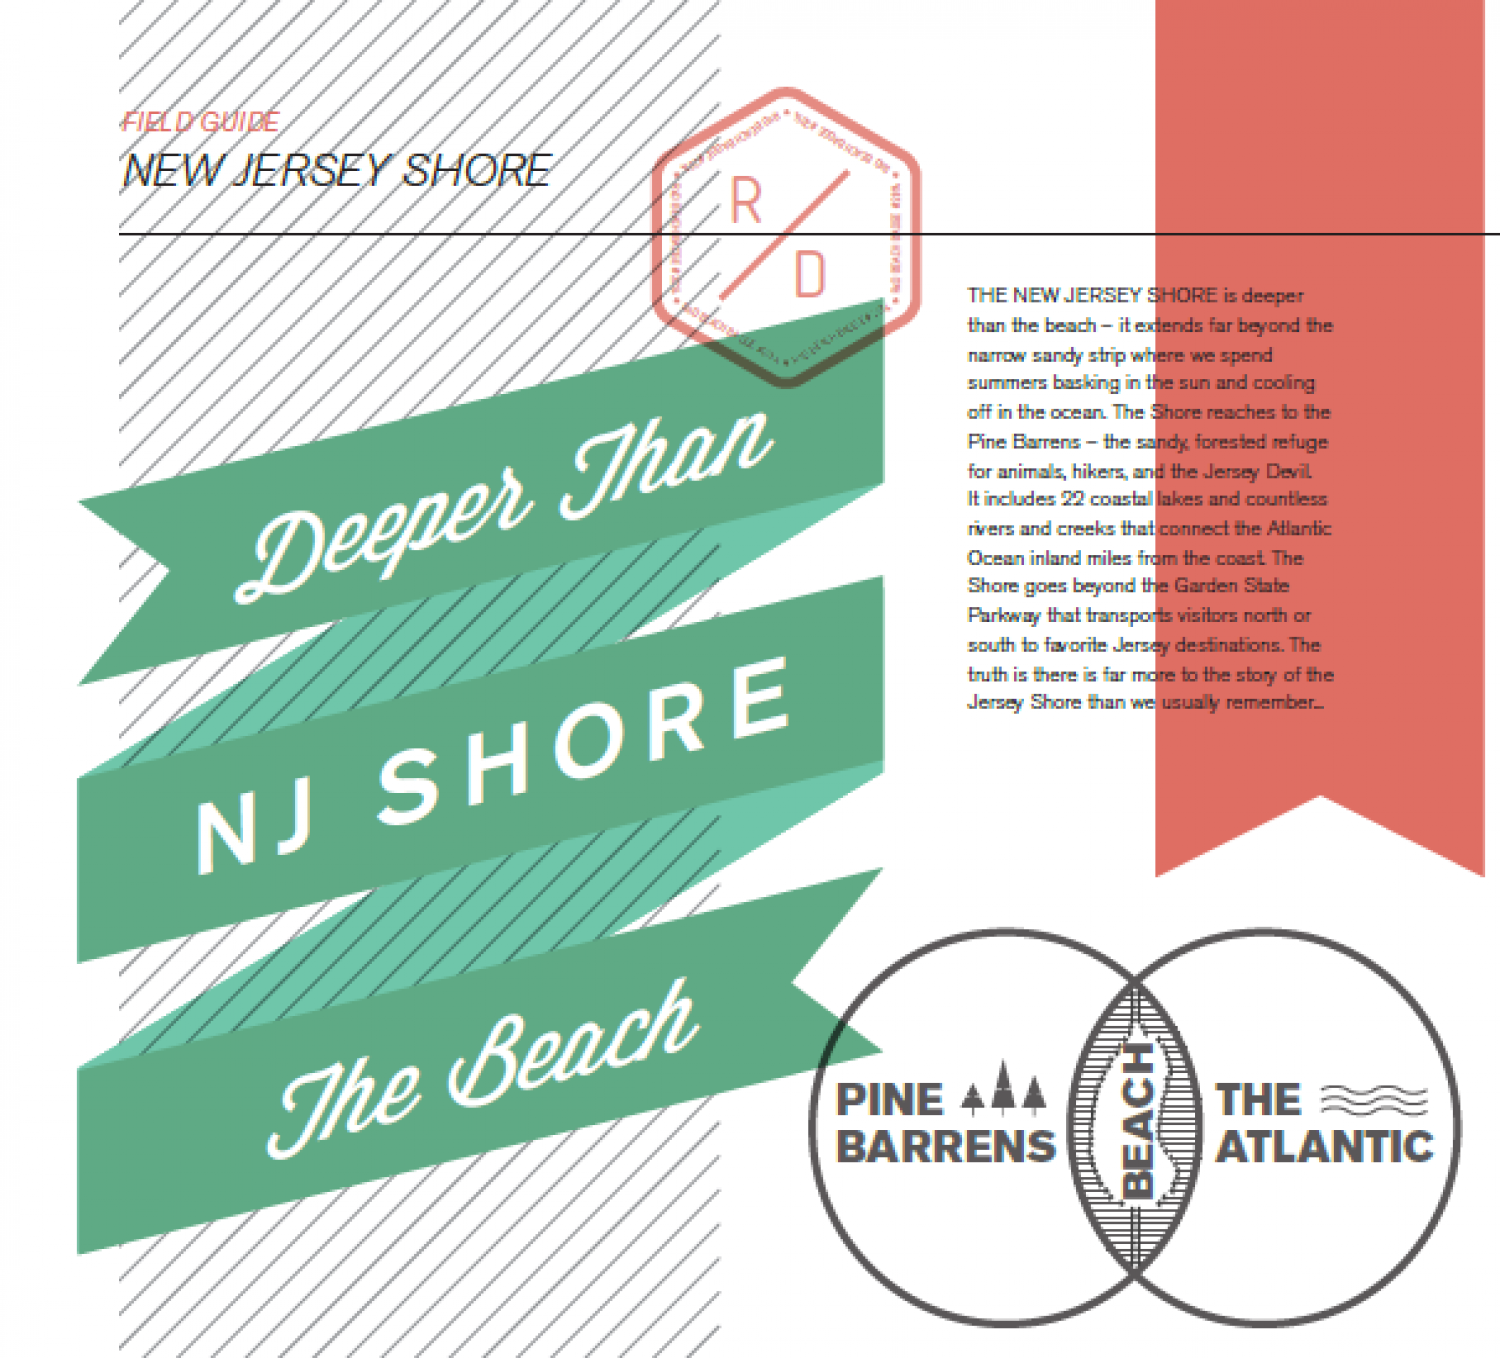 New Jersey Shore: Deeper Than the Beach Infographic